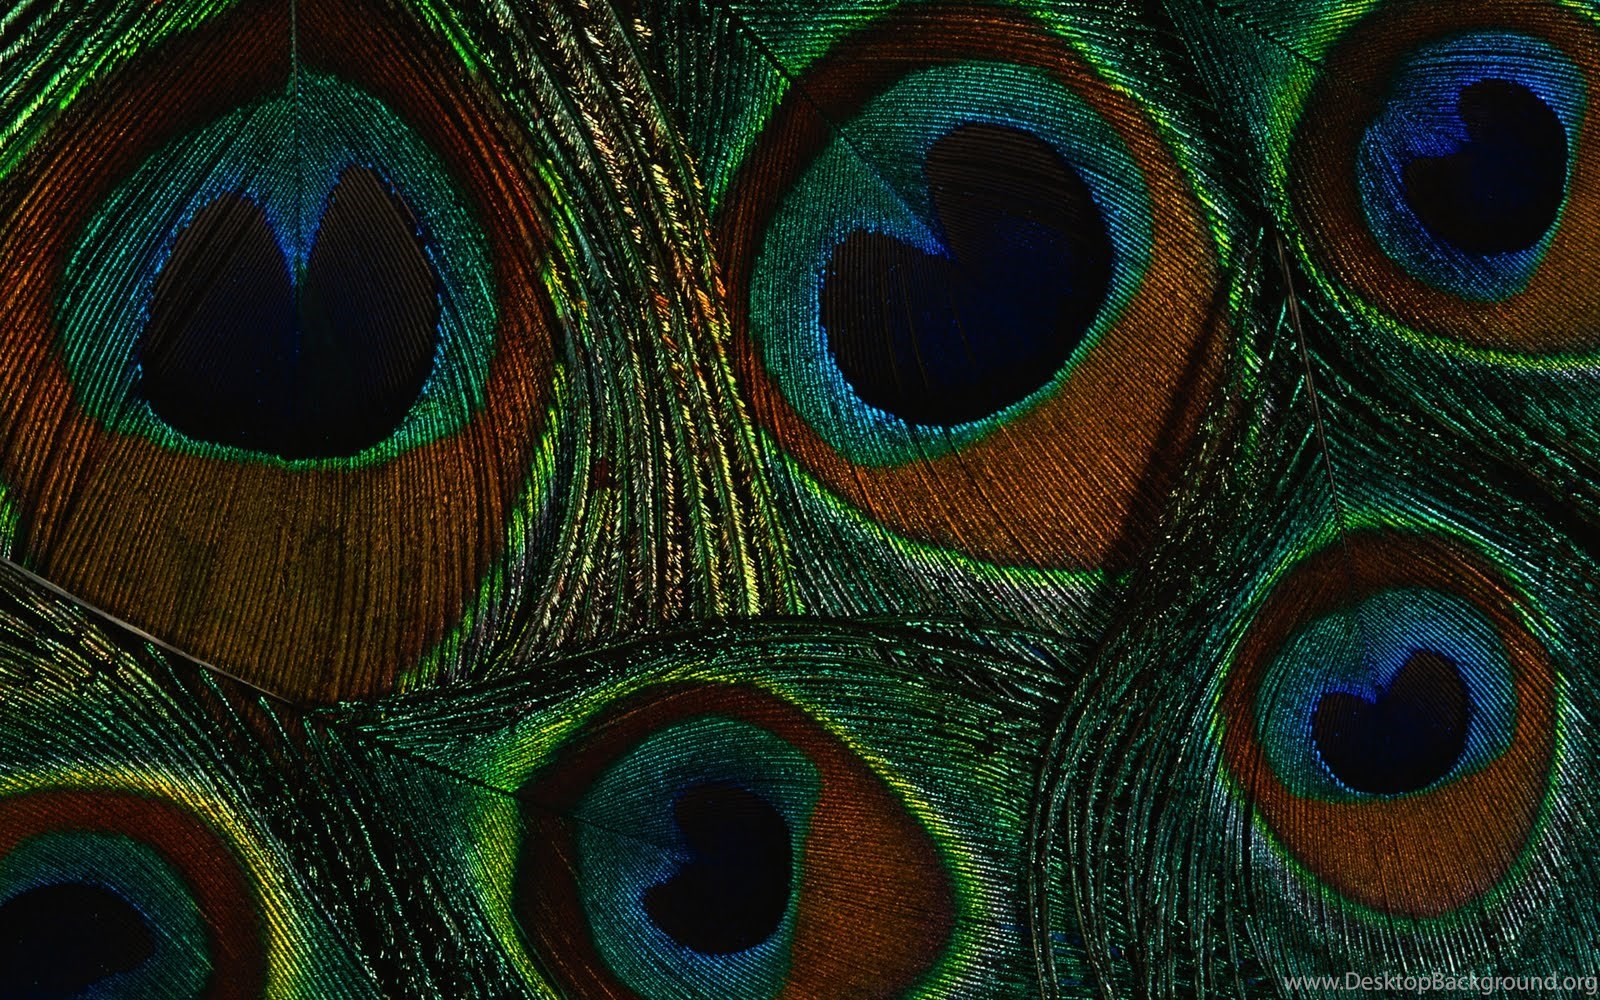 Hd wallpaper unique - Peacock Colorful Feather Wallpapers Unique Hd Wallpapers Hd